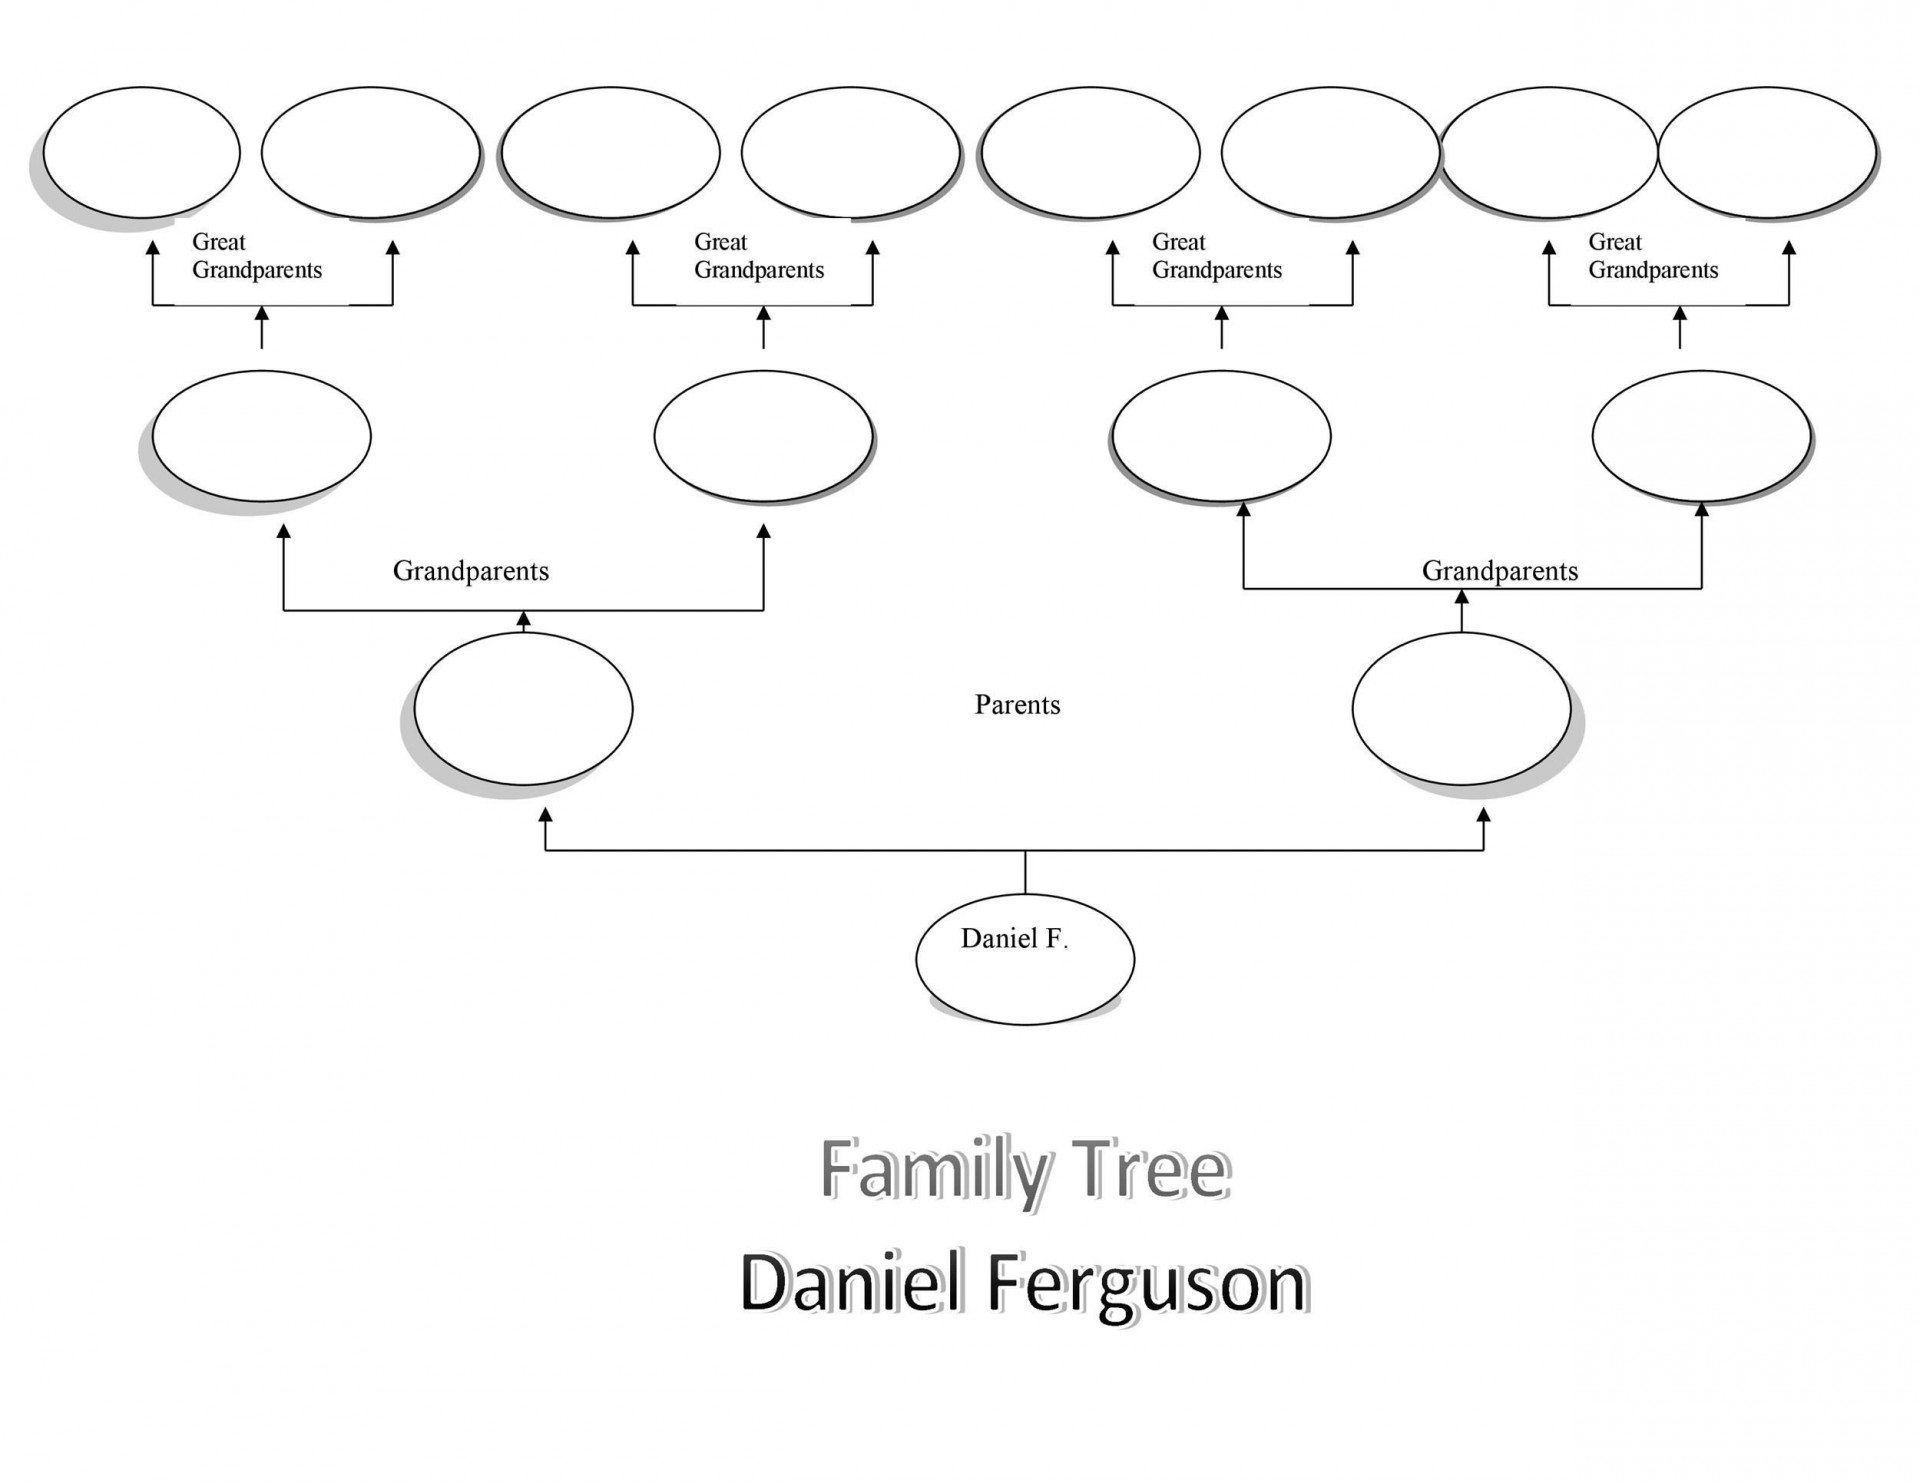 005 Imposing Free Family Tree Template Word Picture  Microsoft Document1920